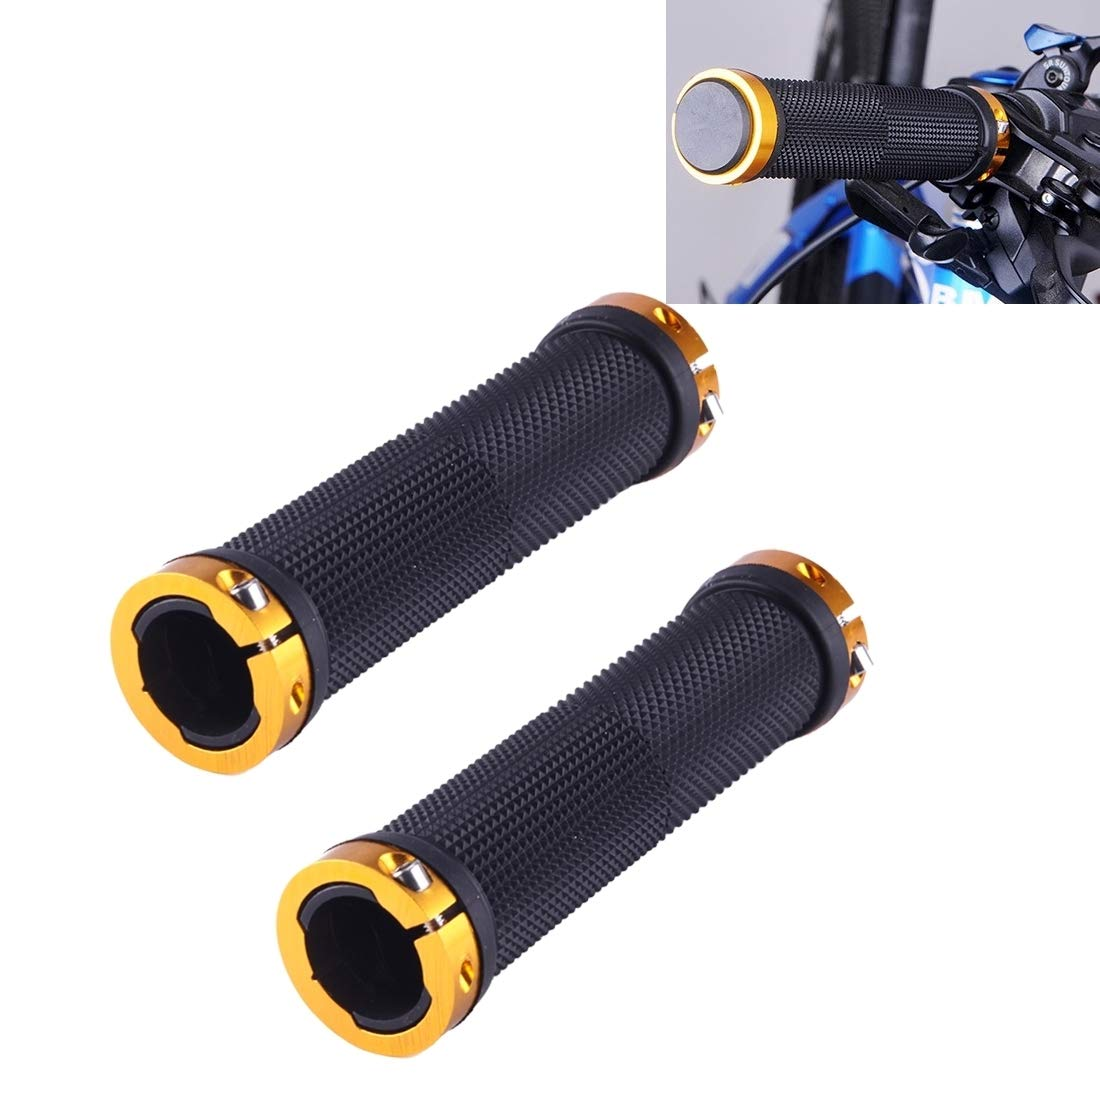 gold Lanbinxiang@ Bicycle Hand Grip NonSlip Double Lock Straight Type, Suitable for Diameter 2021mm, Rubber and Aluminum Alloy Safety (color   Black)